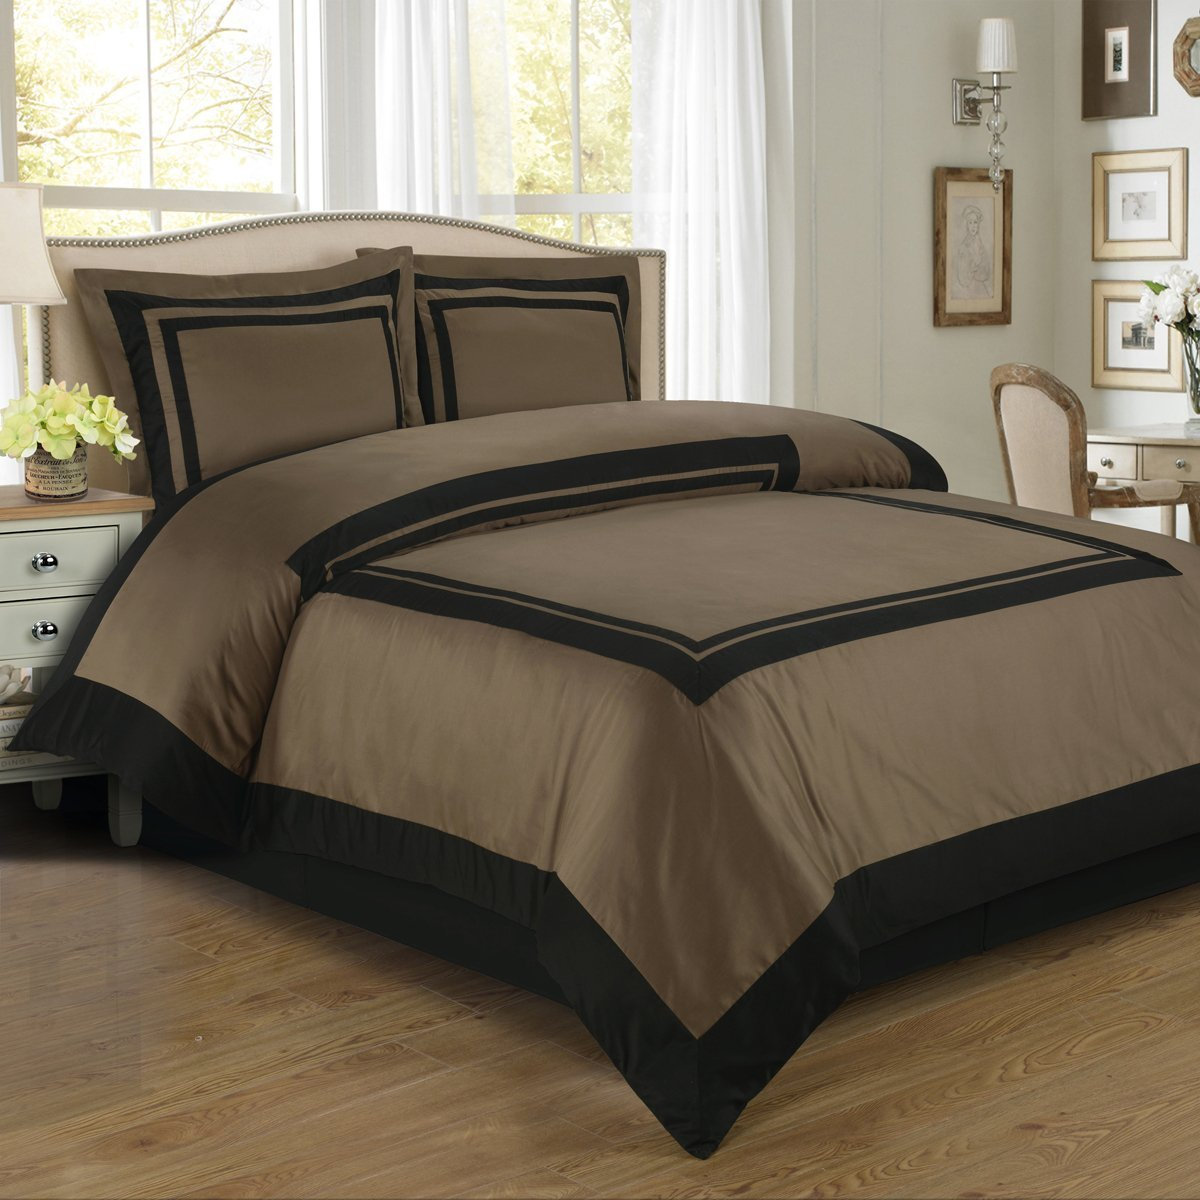 Taupe and Black Hotel 8-piece King Bed-in-a-Bag including 100 % Egyptian Cotton 300 Thread Count by Royal Hotel Royal Hotel Bedding